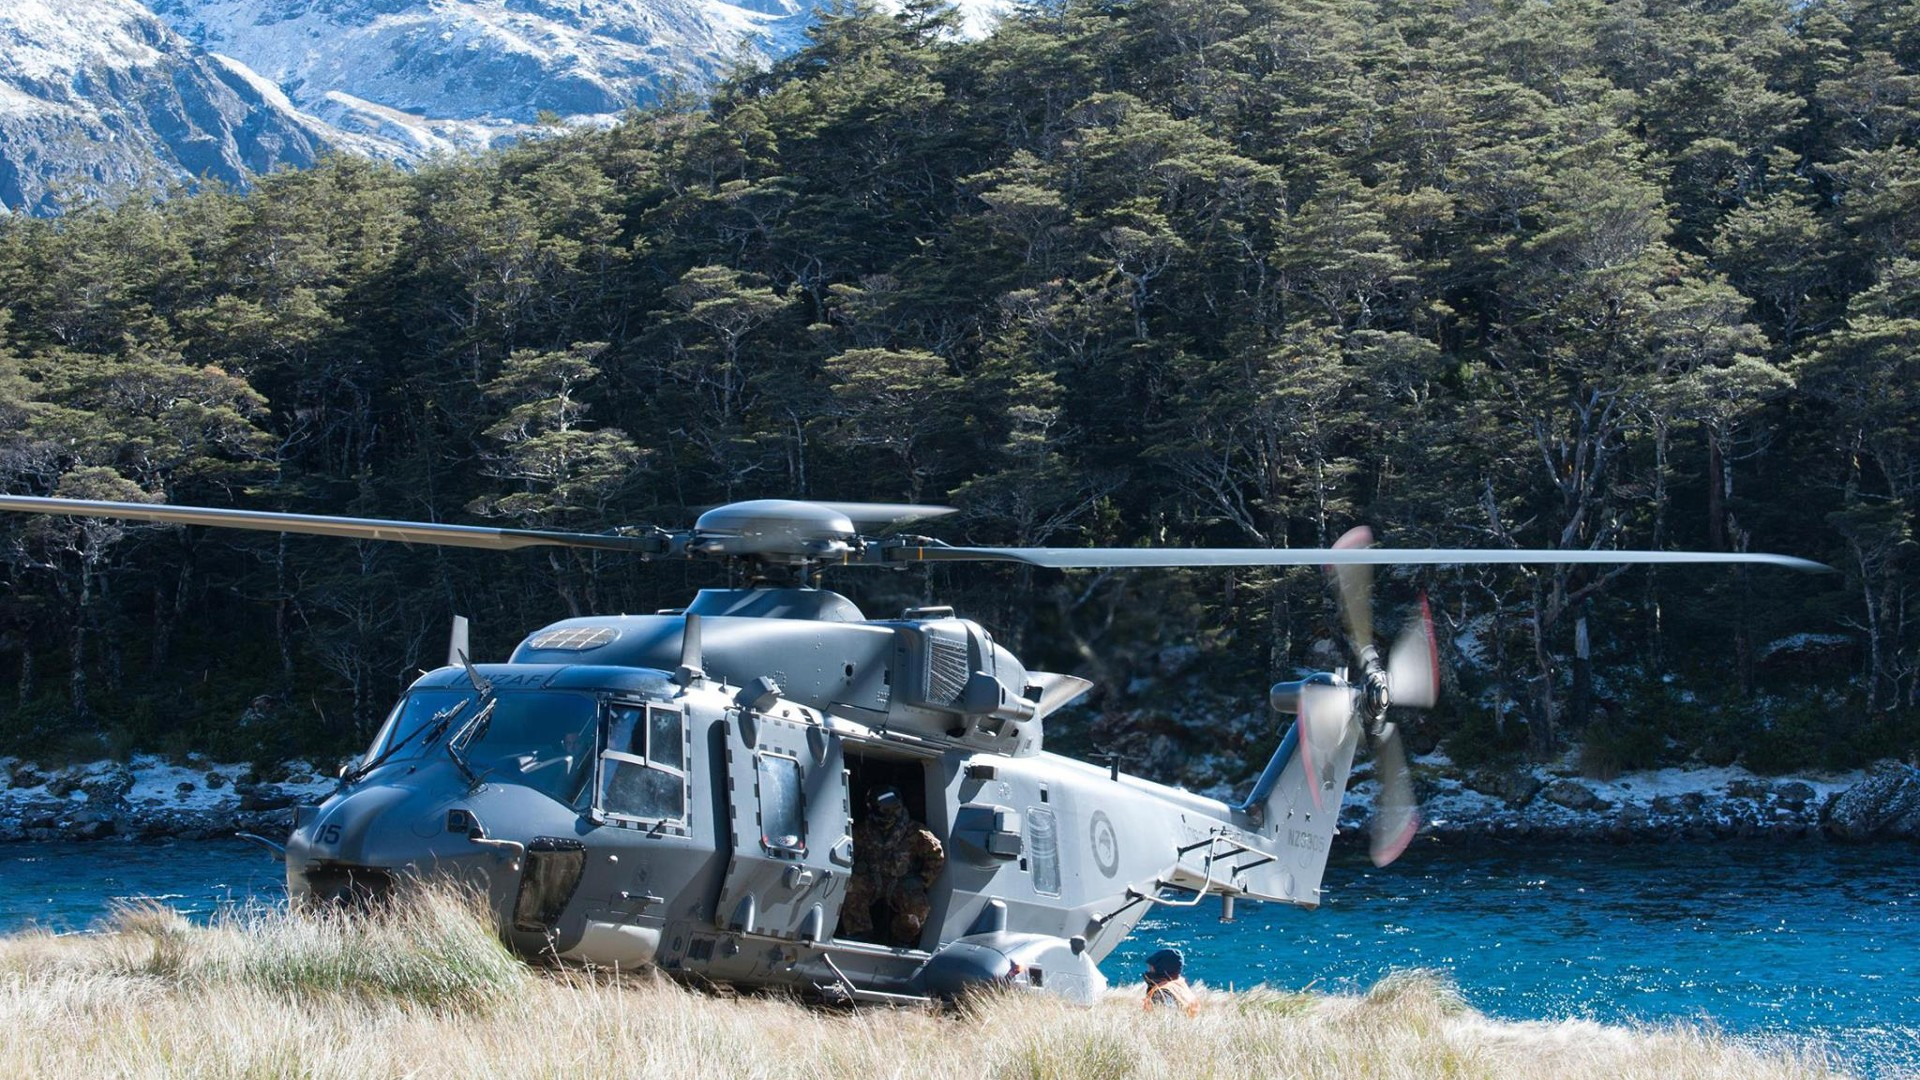 military soldier helicopters military aircraft new zealand